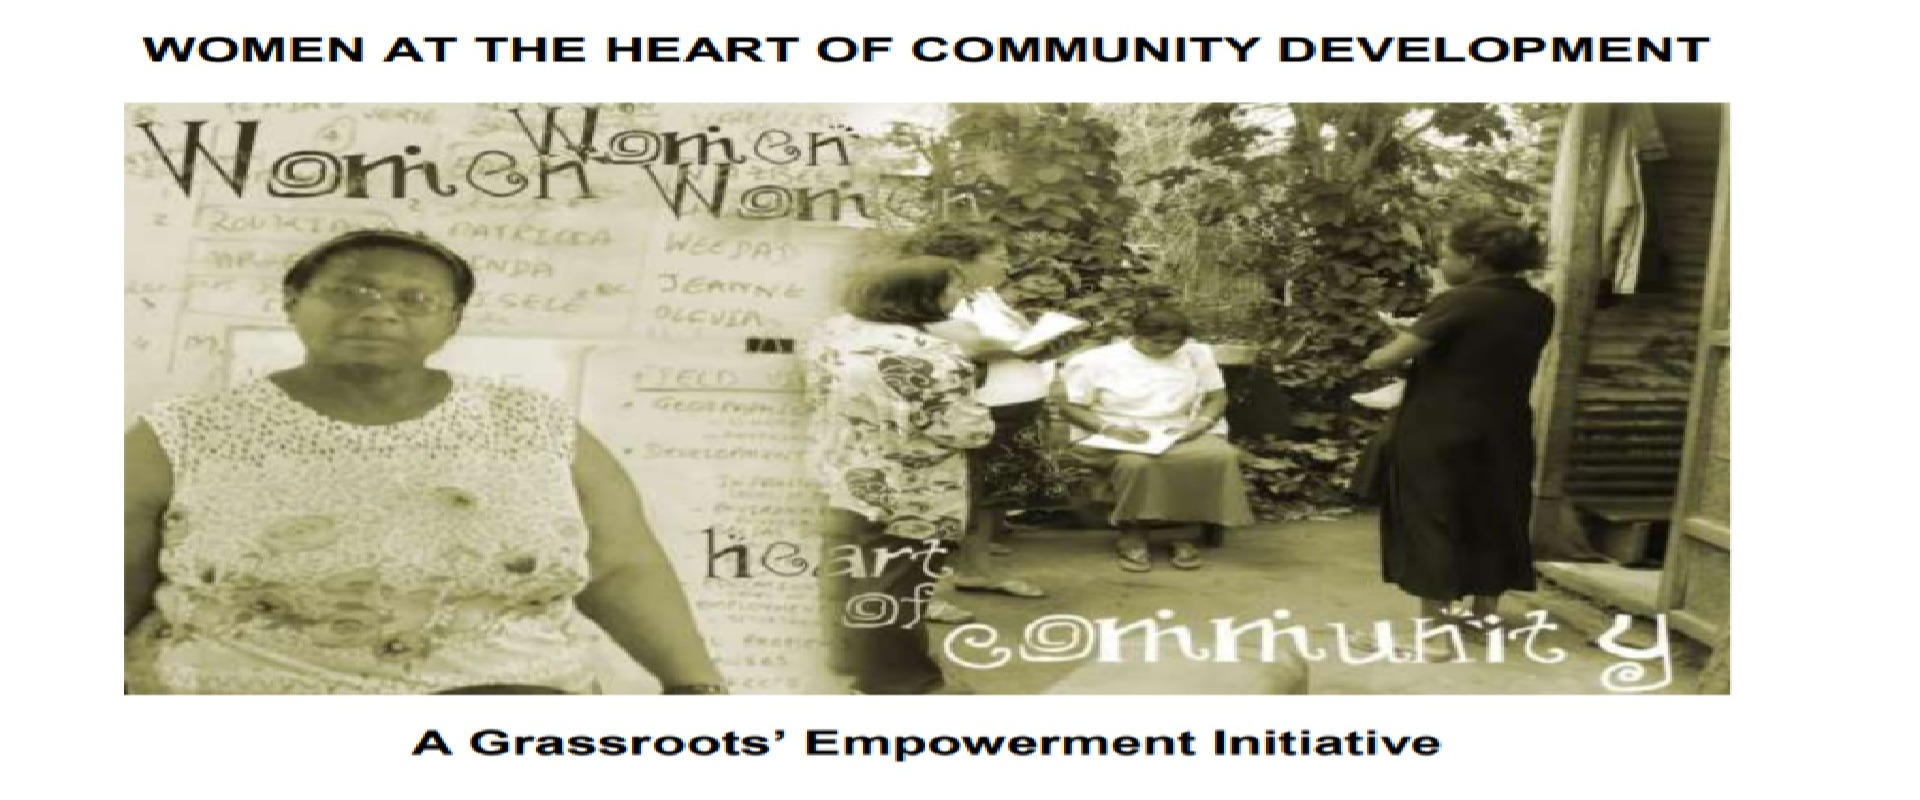 Women at the heart of community development